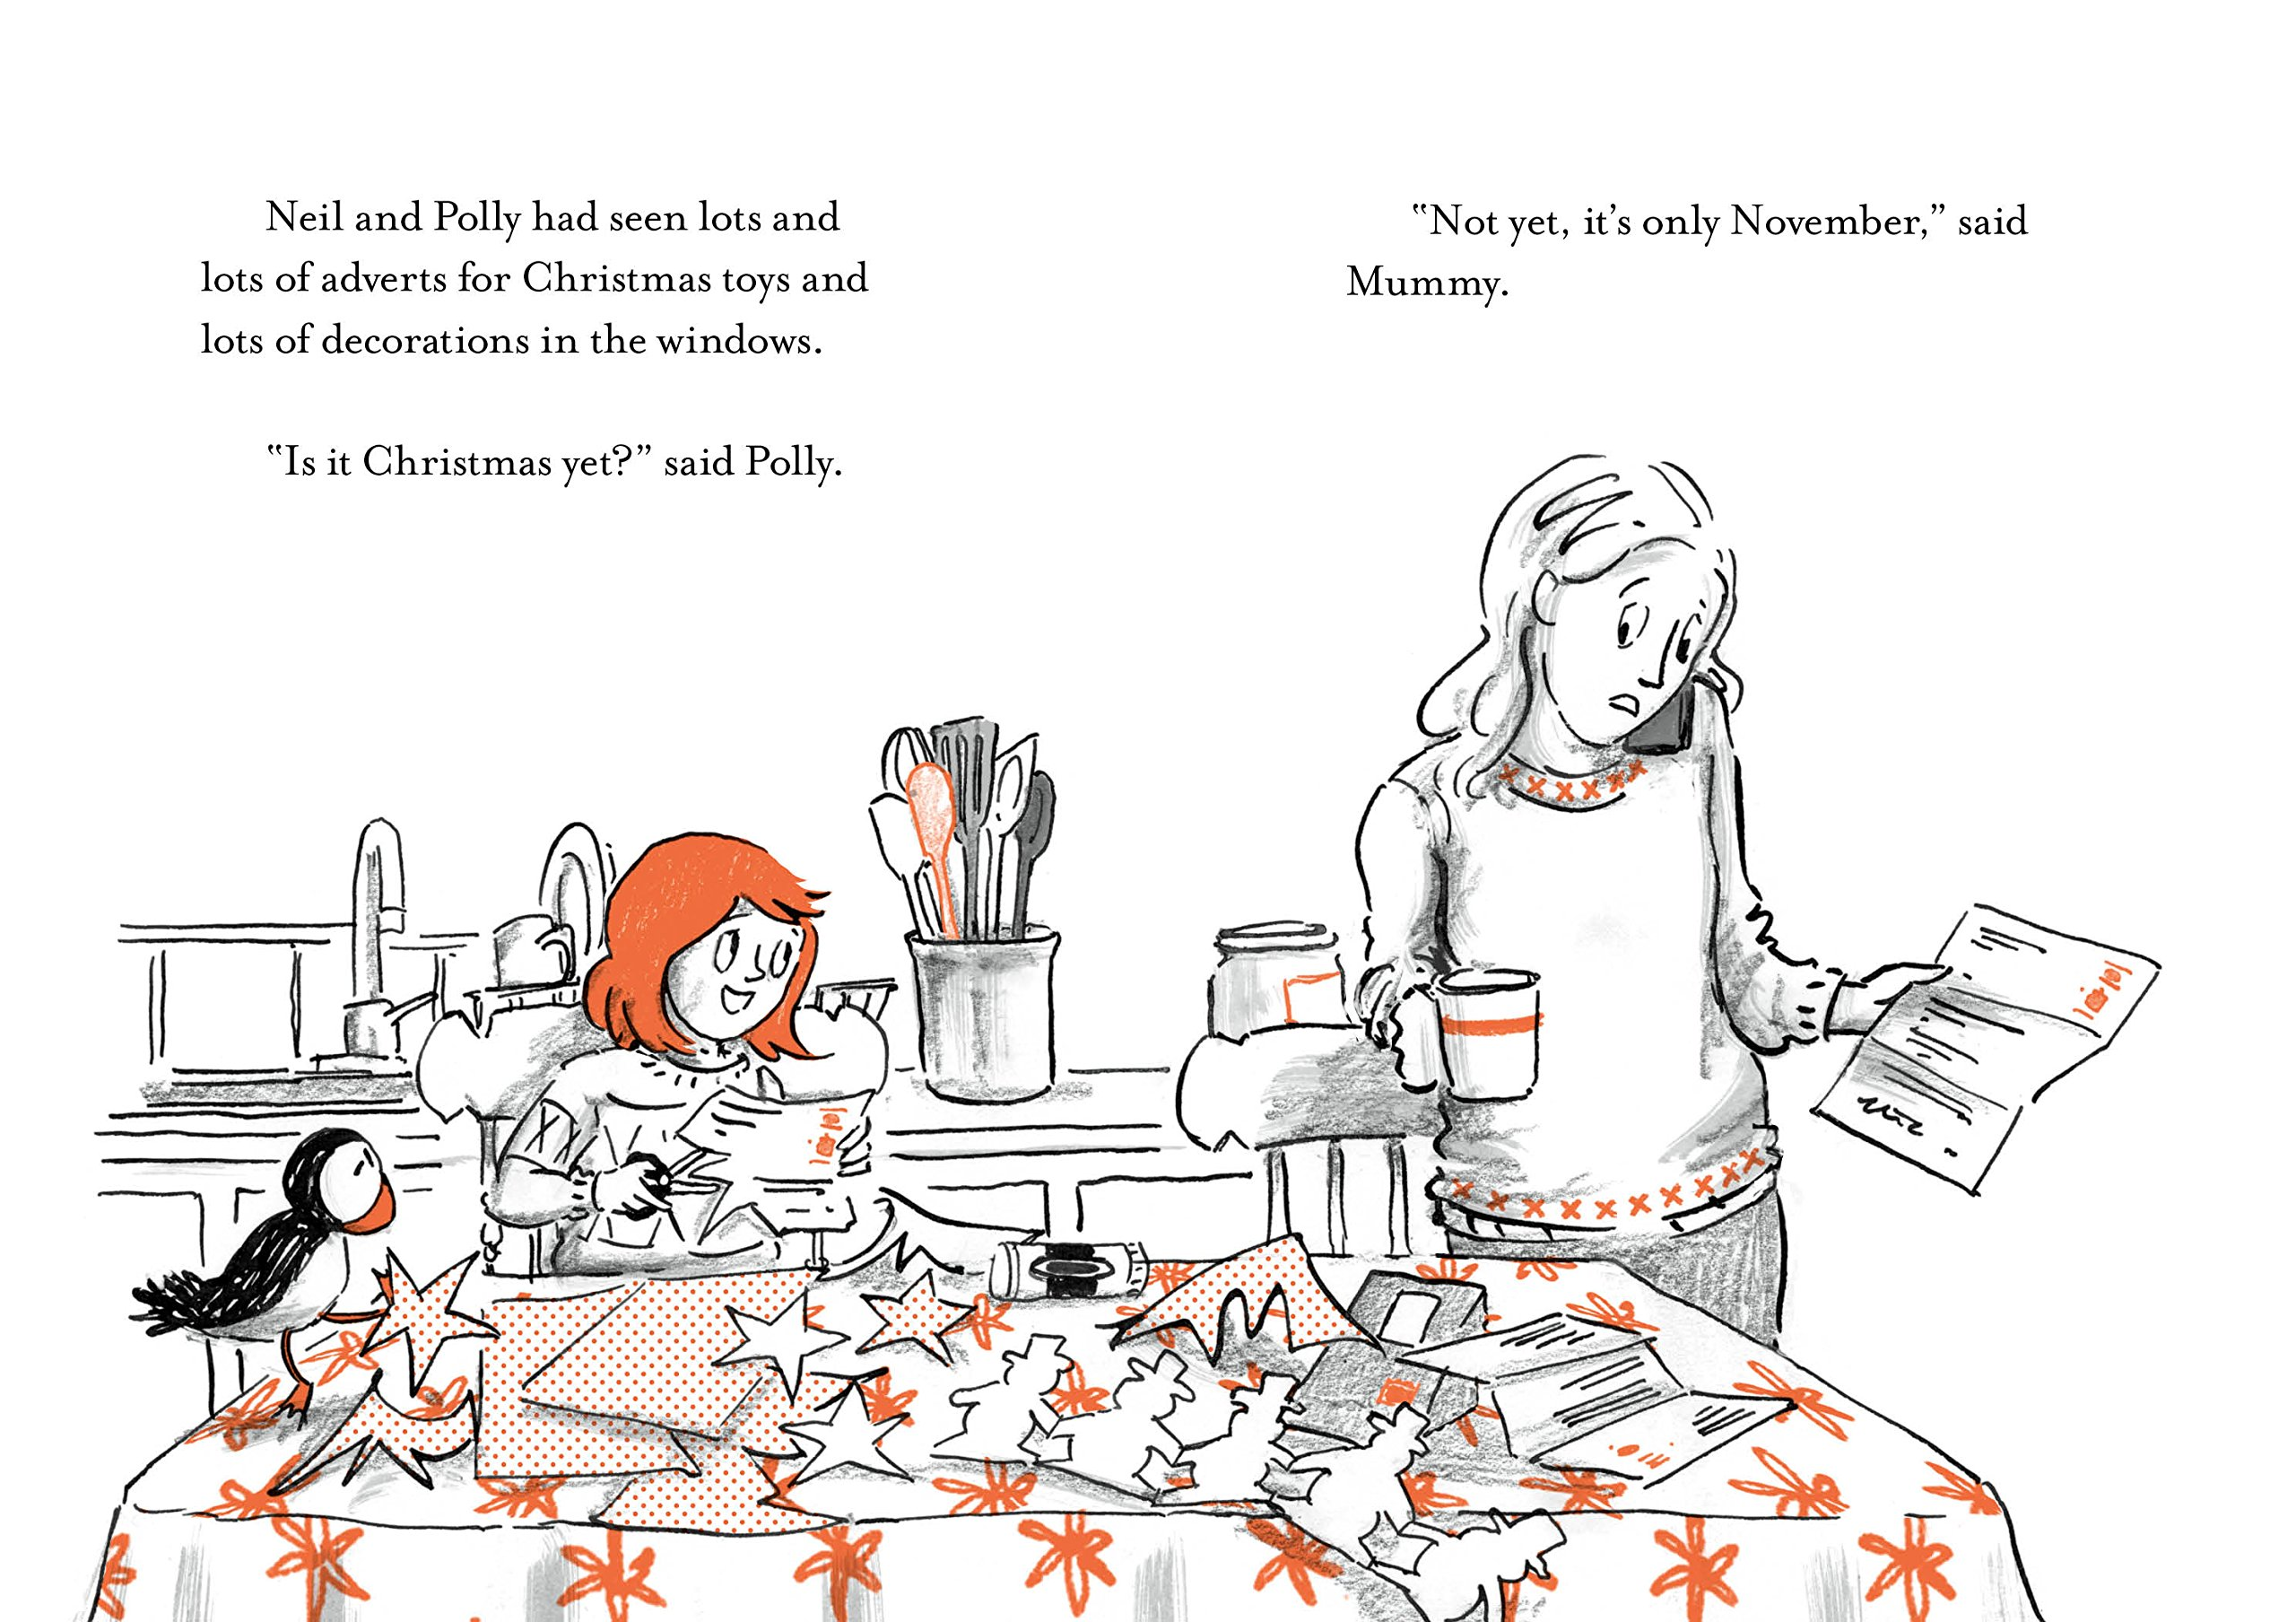 The Happy Christmas: Book 4 (Polly and the Puffin): Amazon.co.uk ...